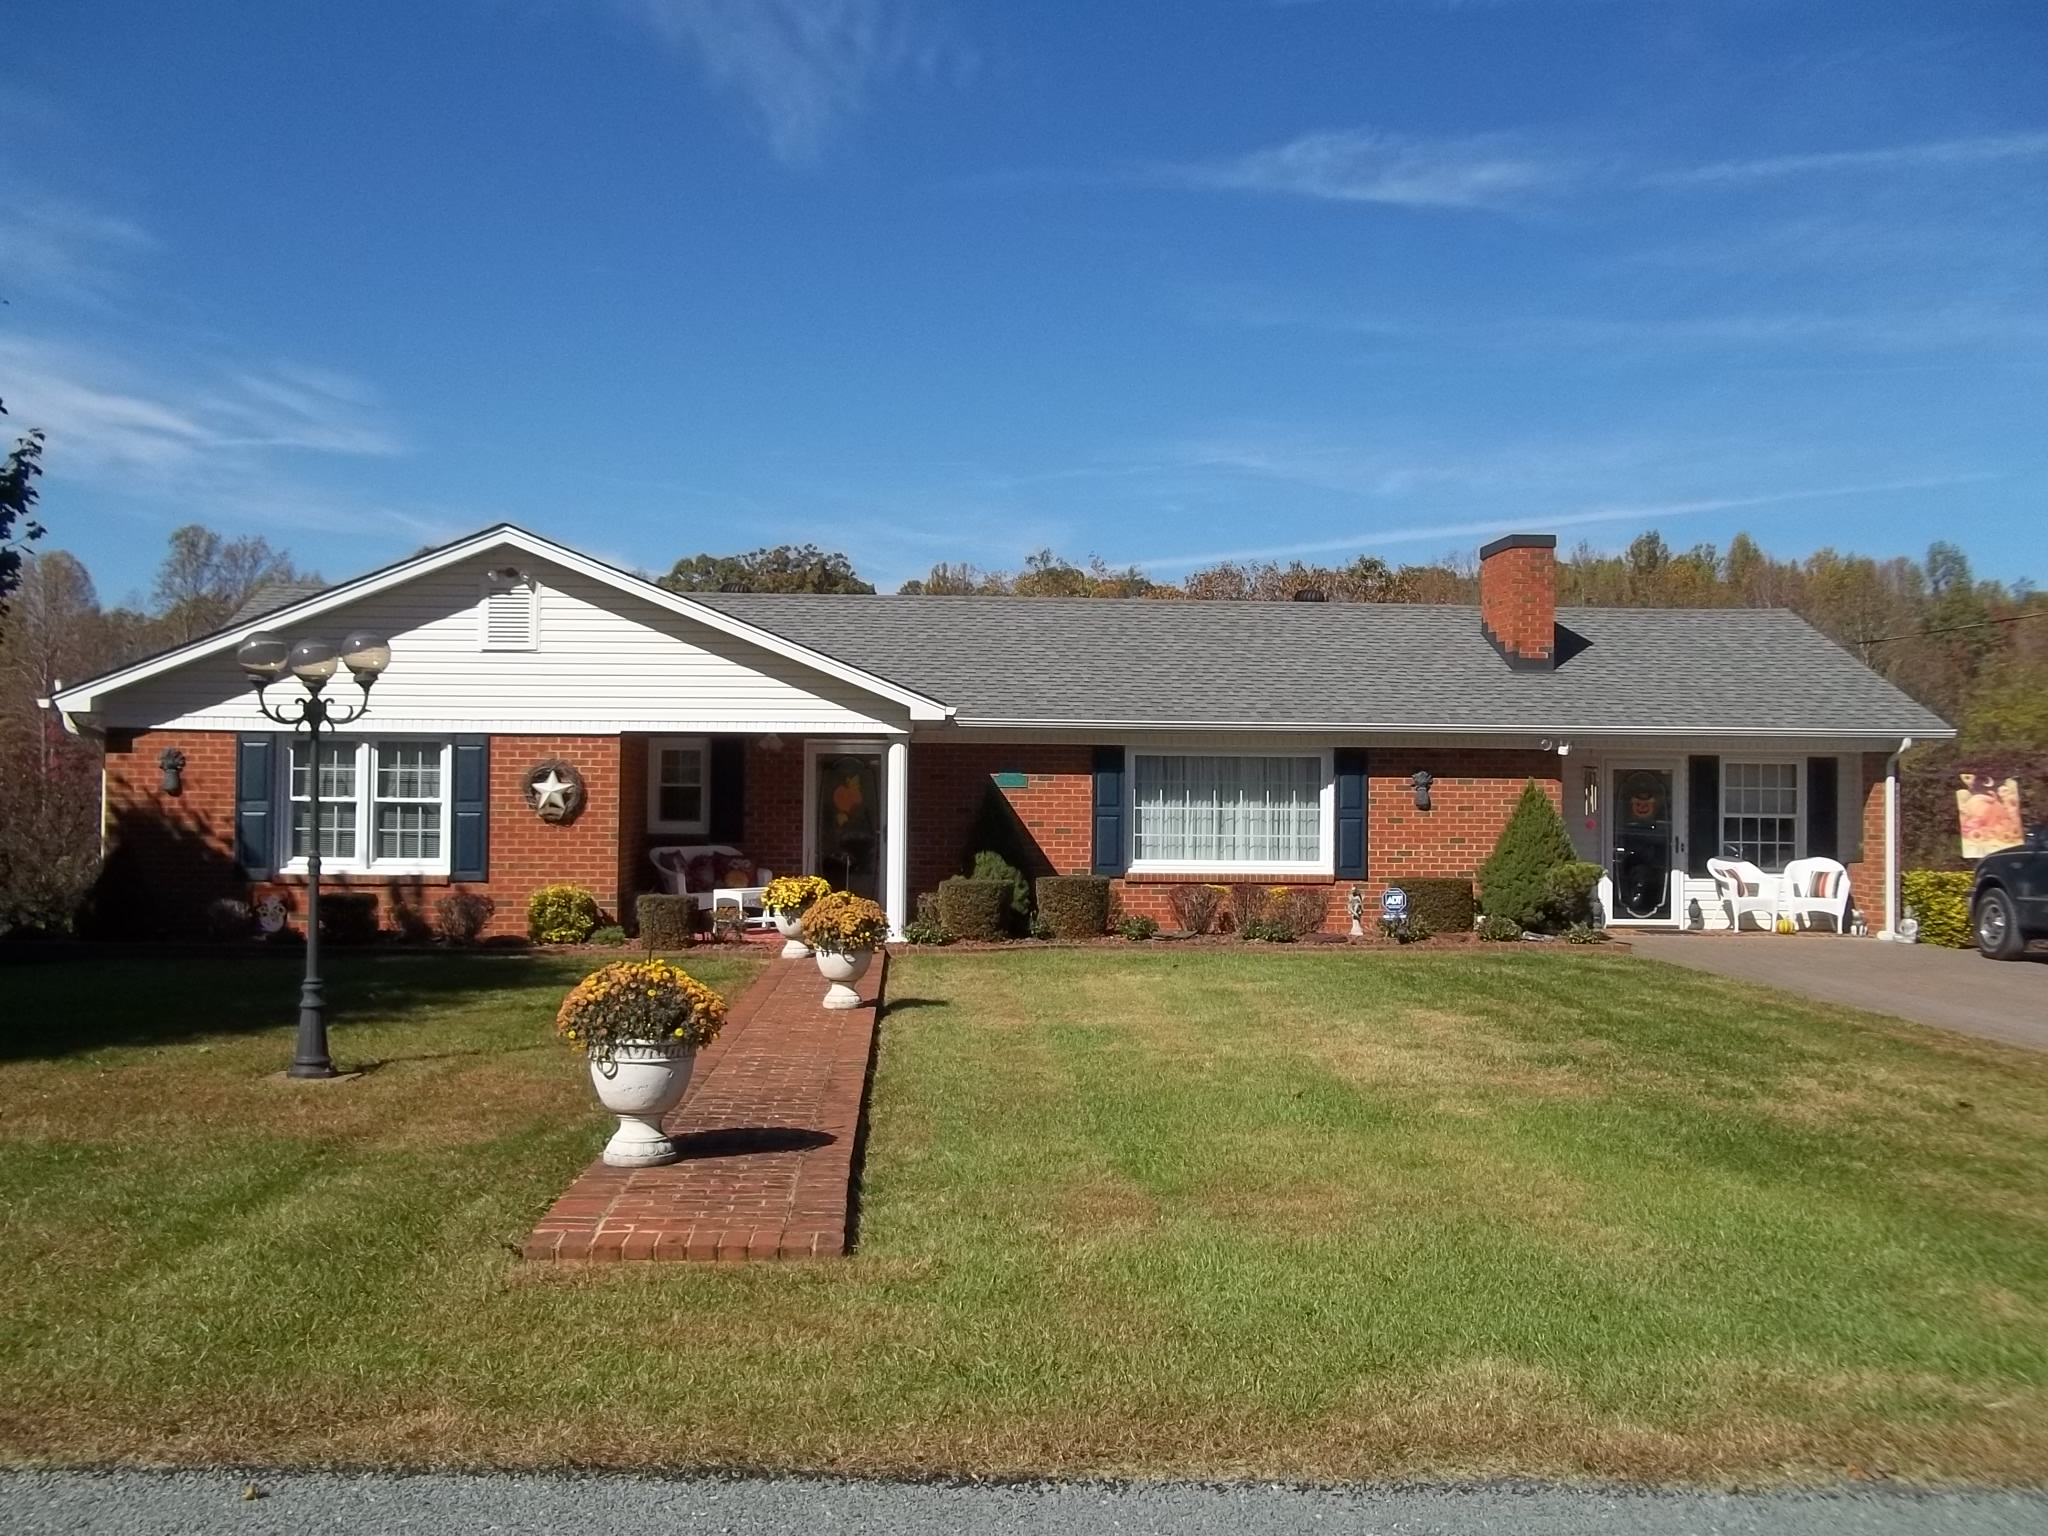 275 Gouyer Dr, Madison Heights, Virginia 24572